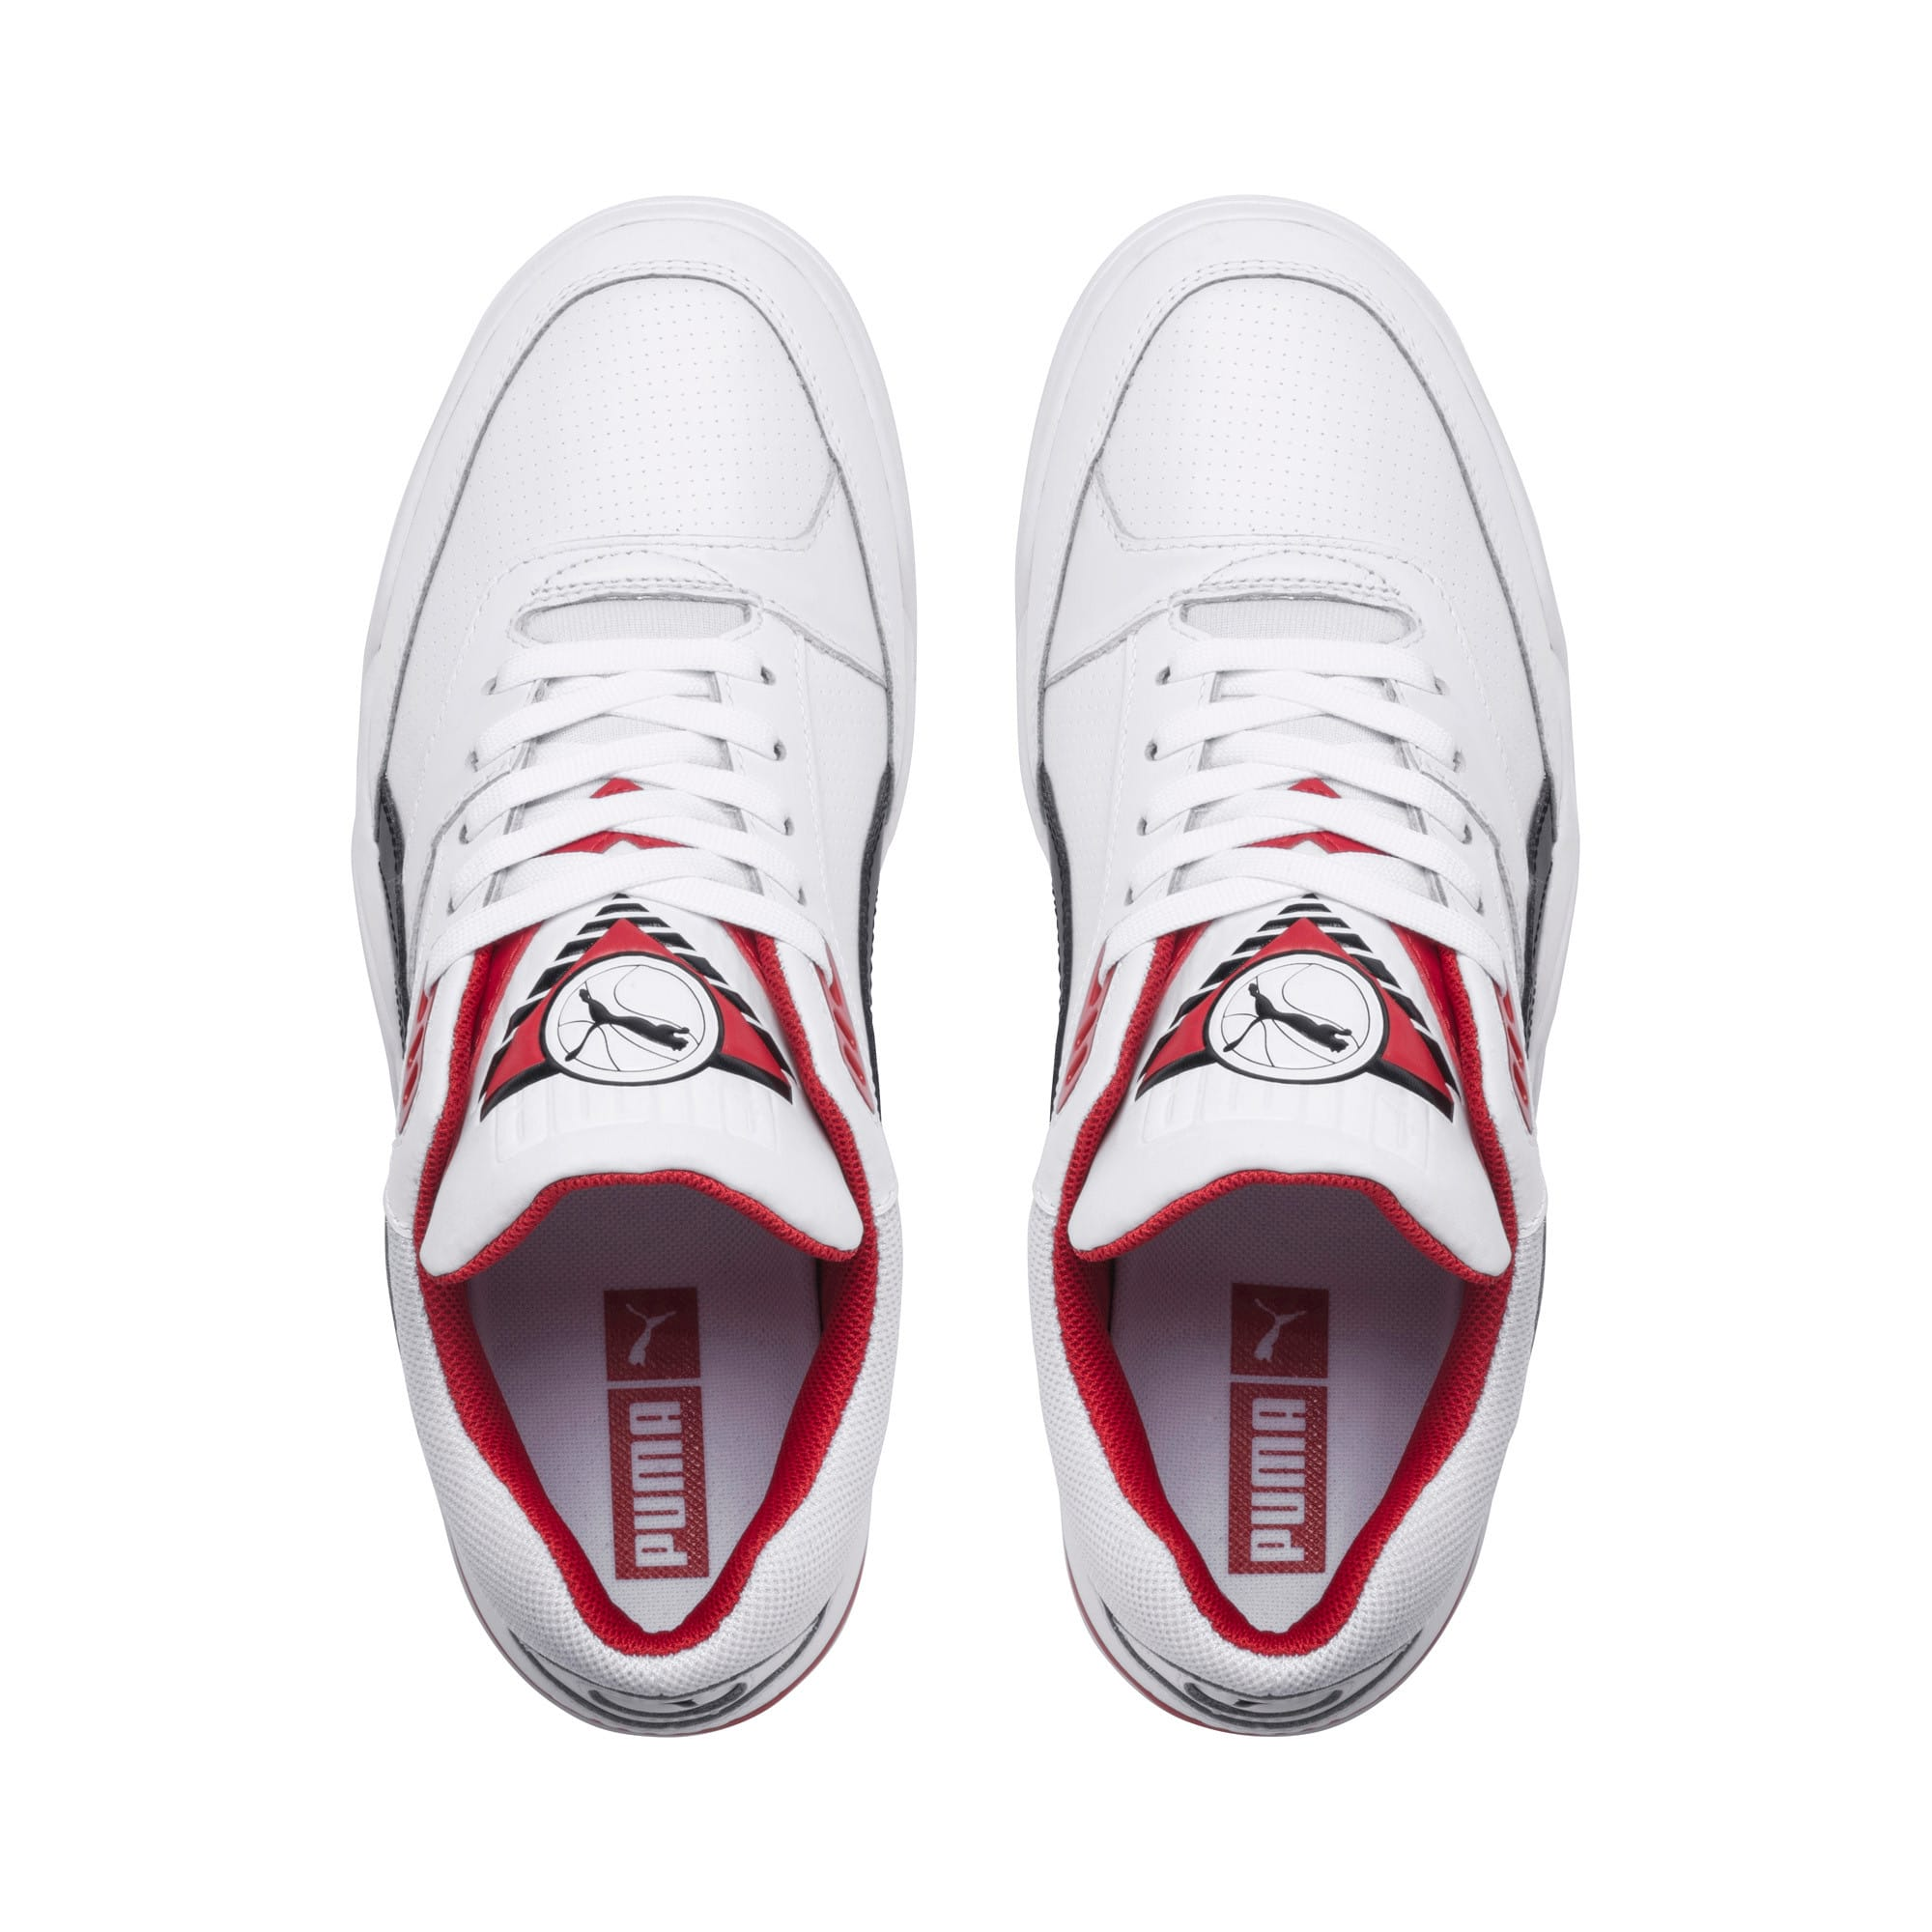 Anteprima 6 di Palace Guard Men's Basketball Trainers, Puma White-Puma Black-red, medio